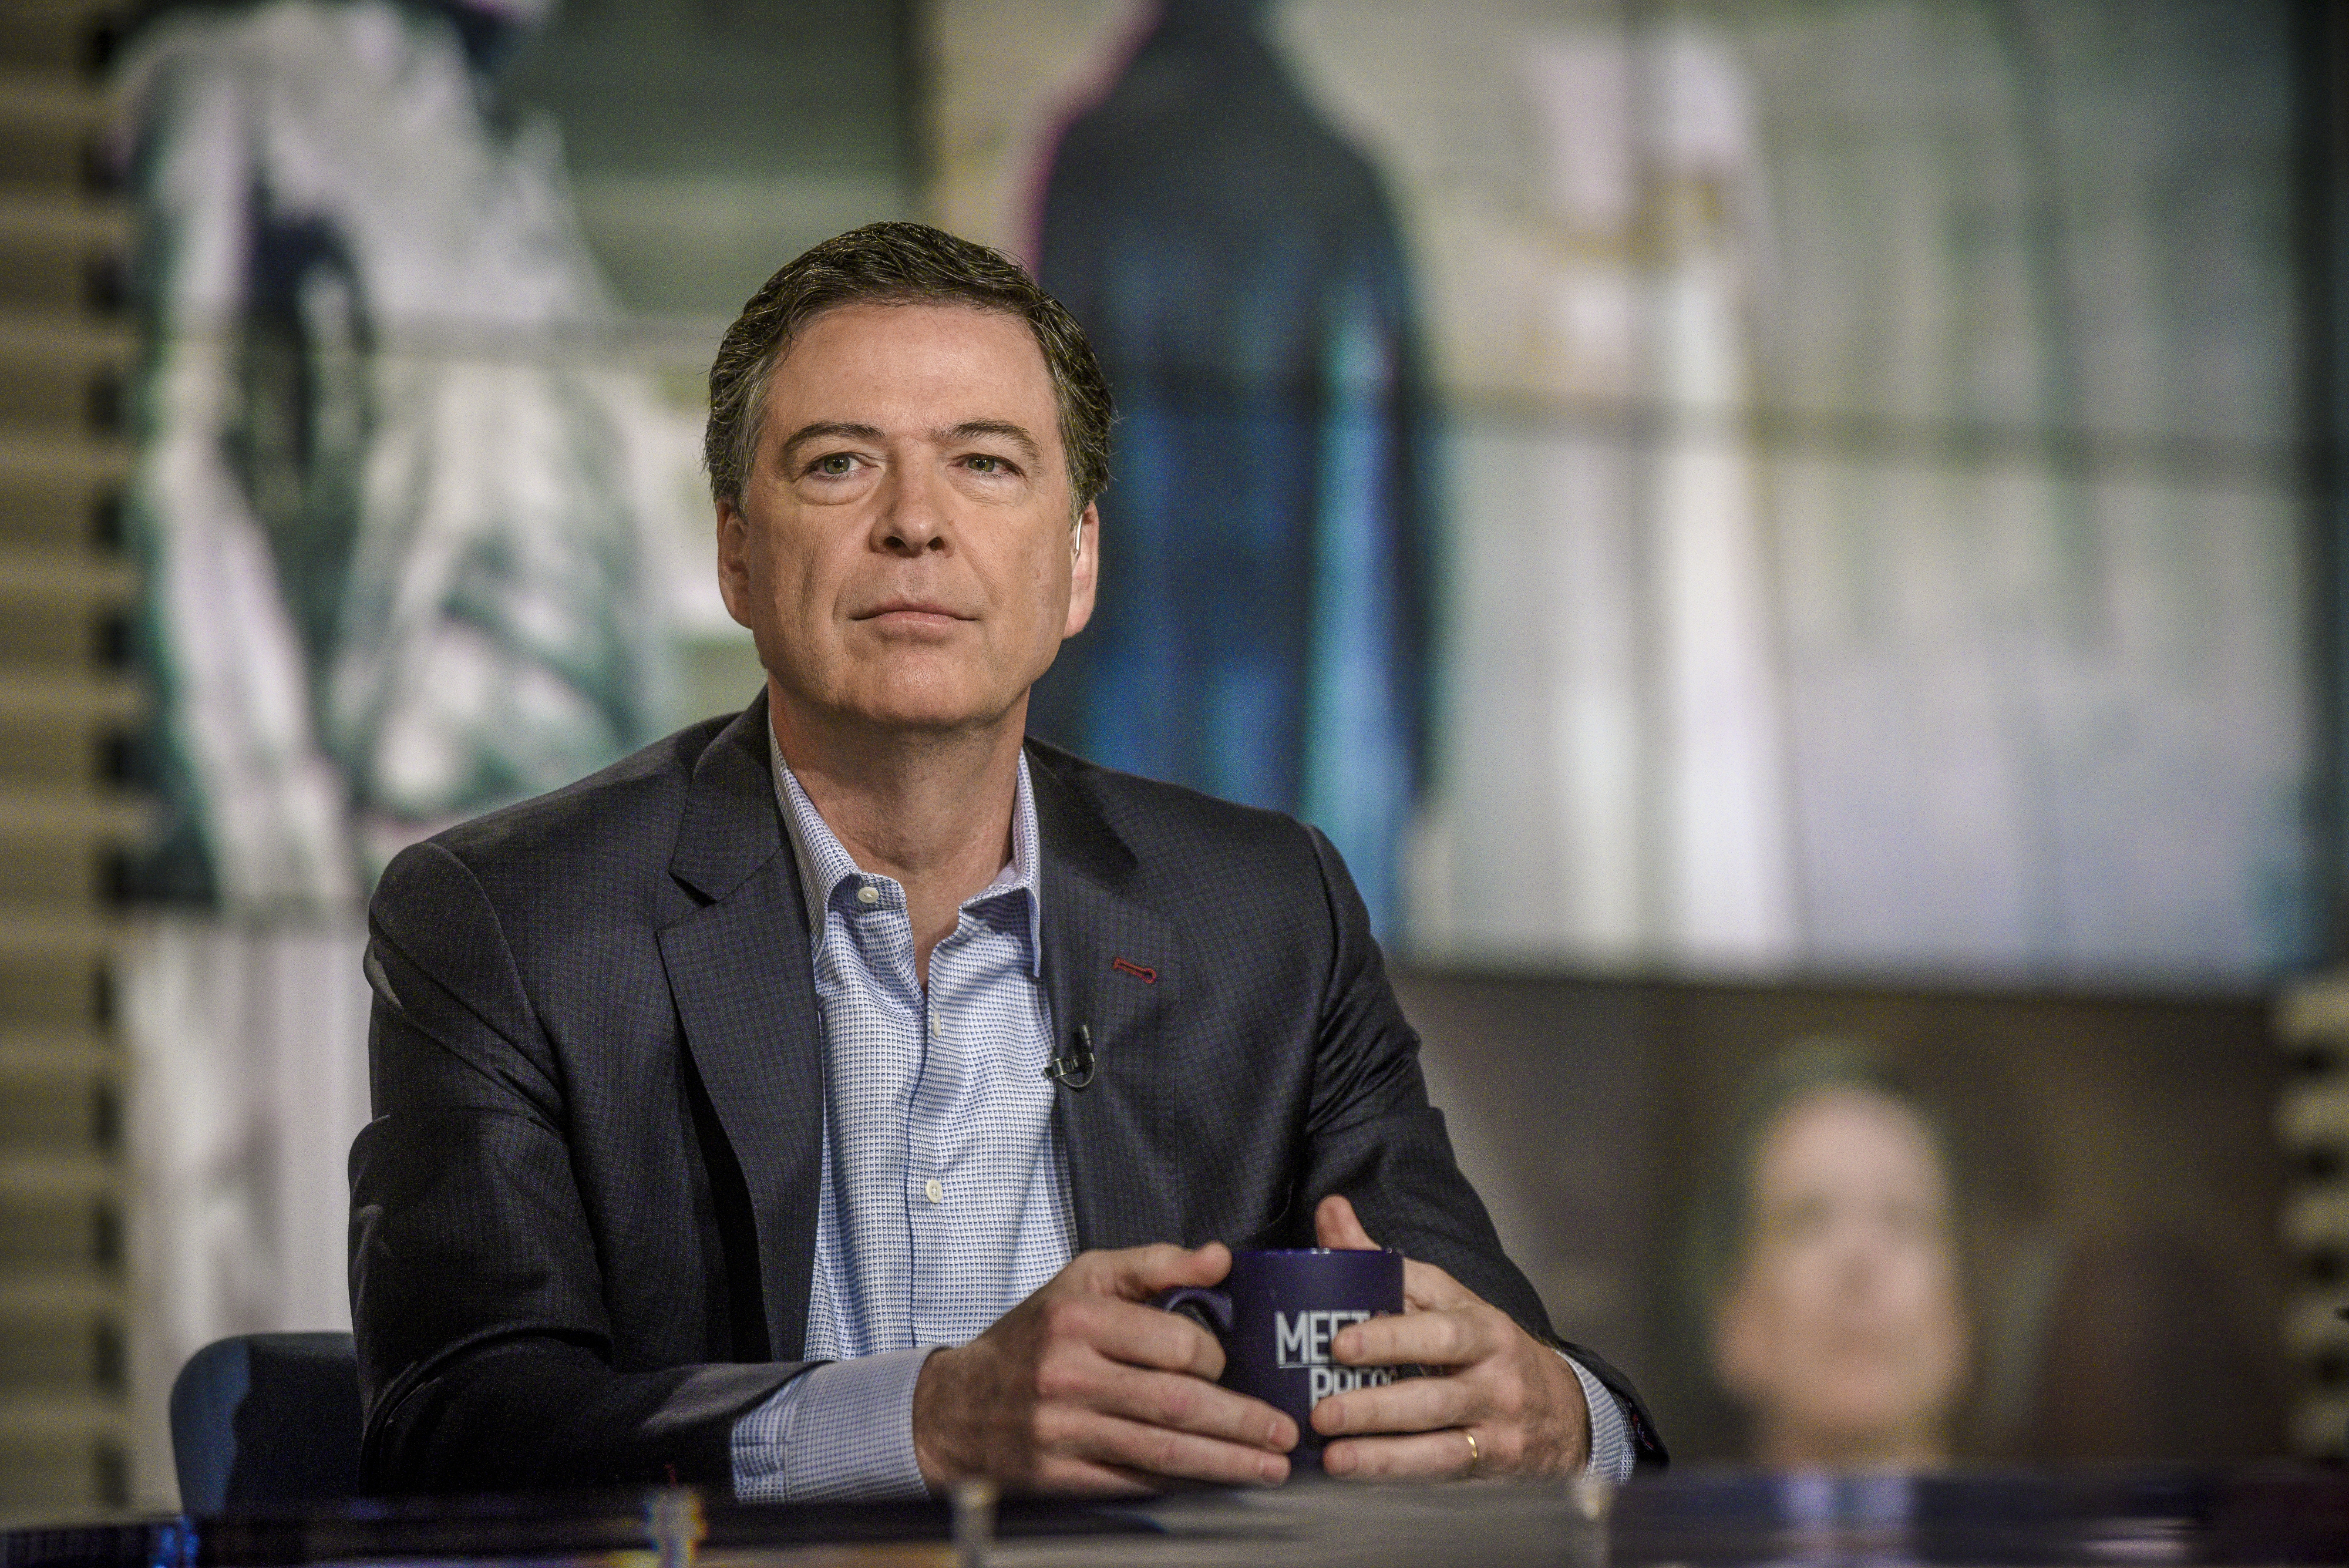 James Comey, Former FBI Director, appears on  Meet the Press  in Washington, D.C., Sunday, April 29, 2018.